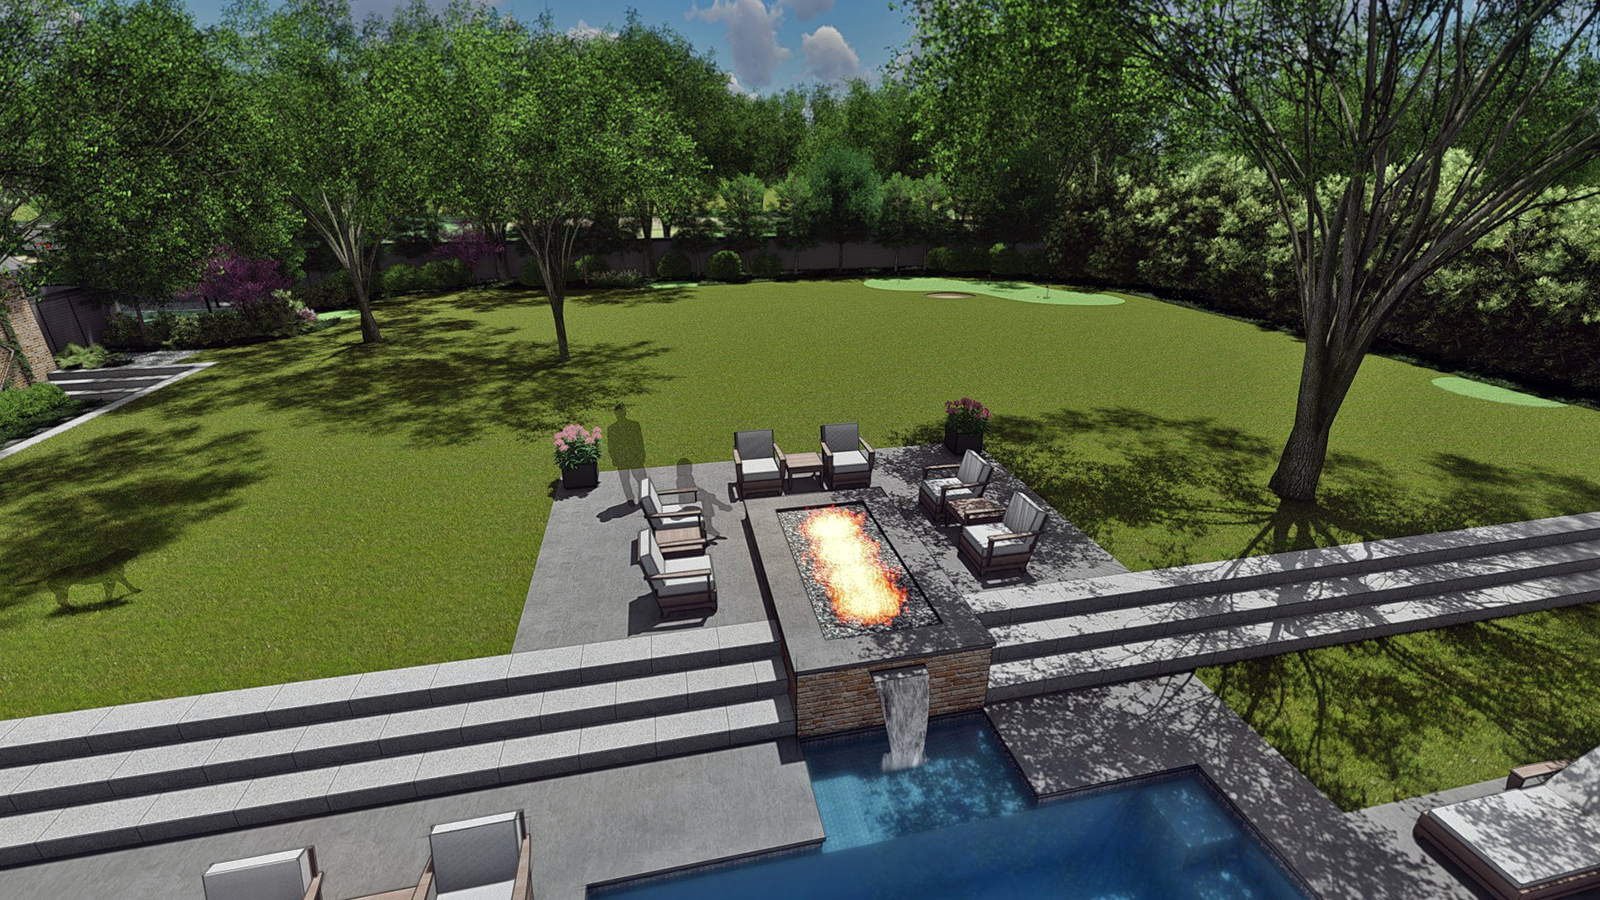 FIRE PIT SEATING & REAR LAWN